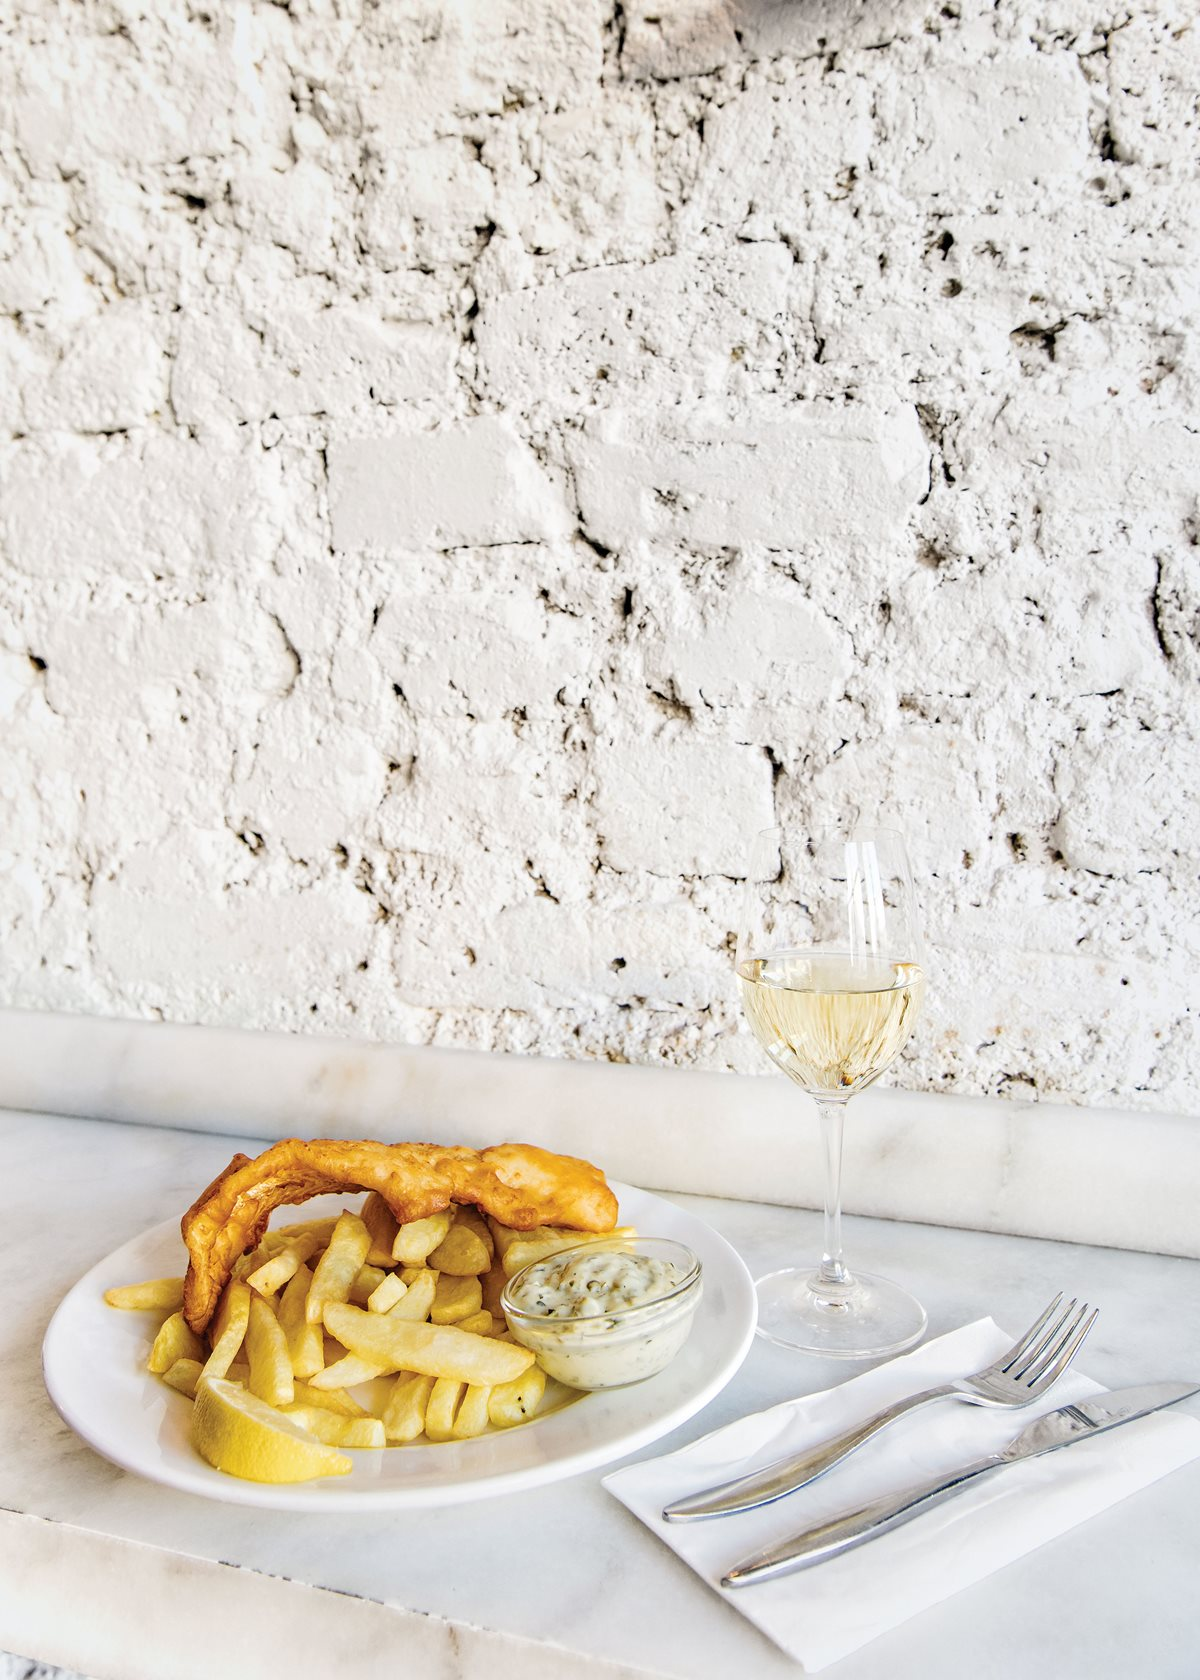 Fish-and-chips at Fish Shop's Benburb Street location.